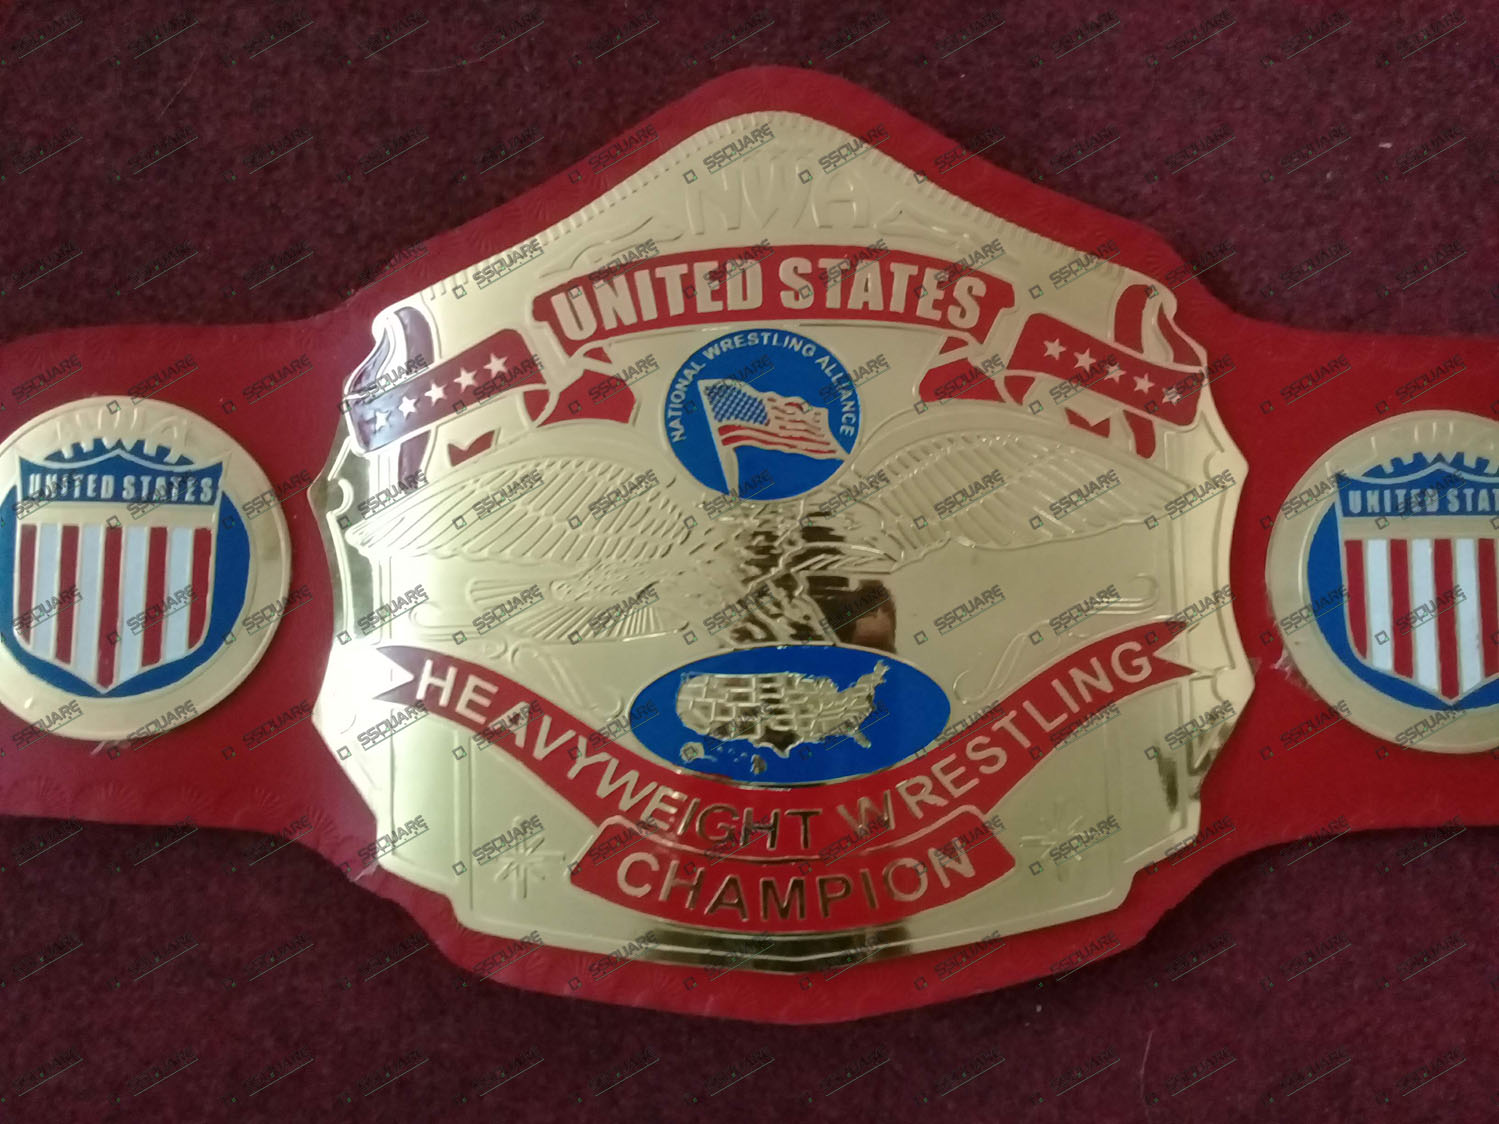 NWA United States Heavyweight Wrestling Champion replica belt